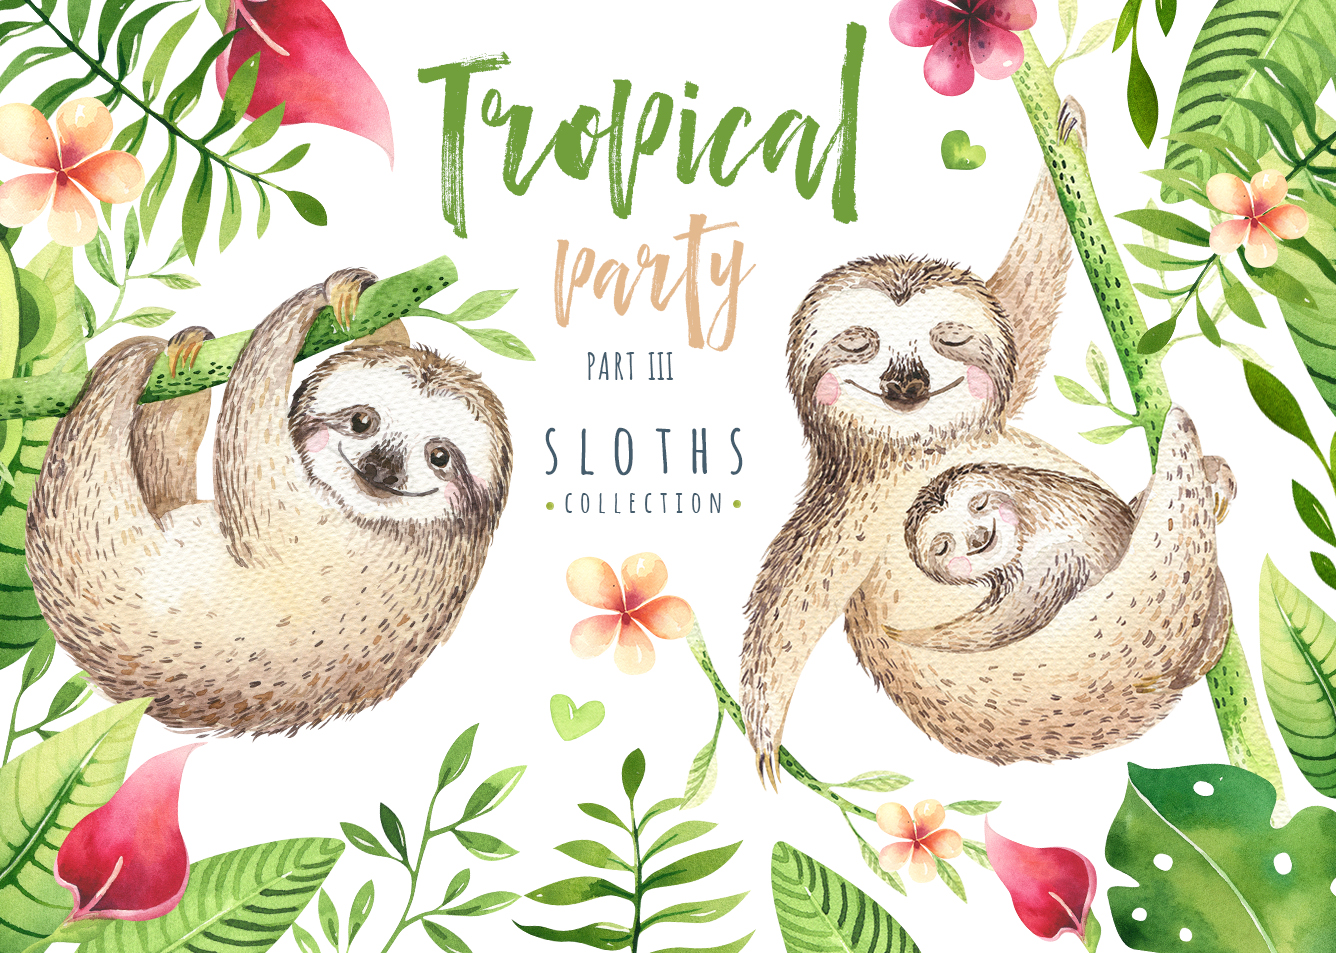 Tropical party III.Sloth collection example image 1